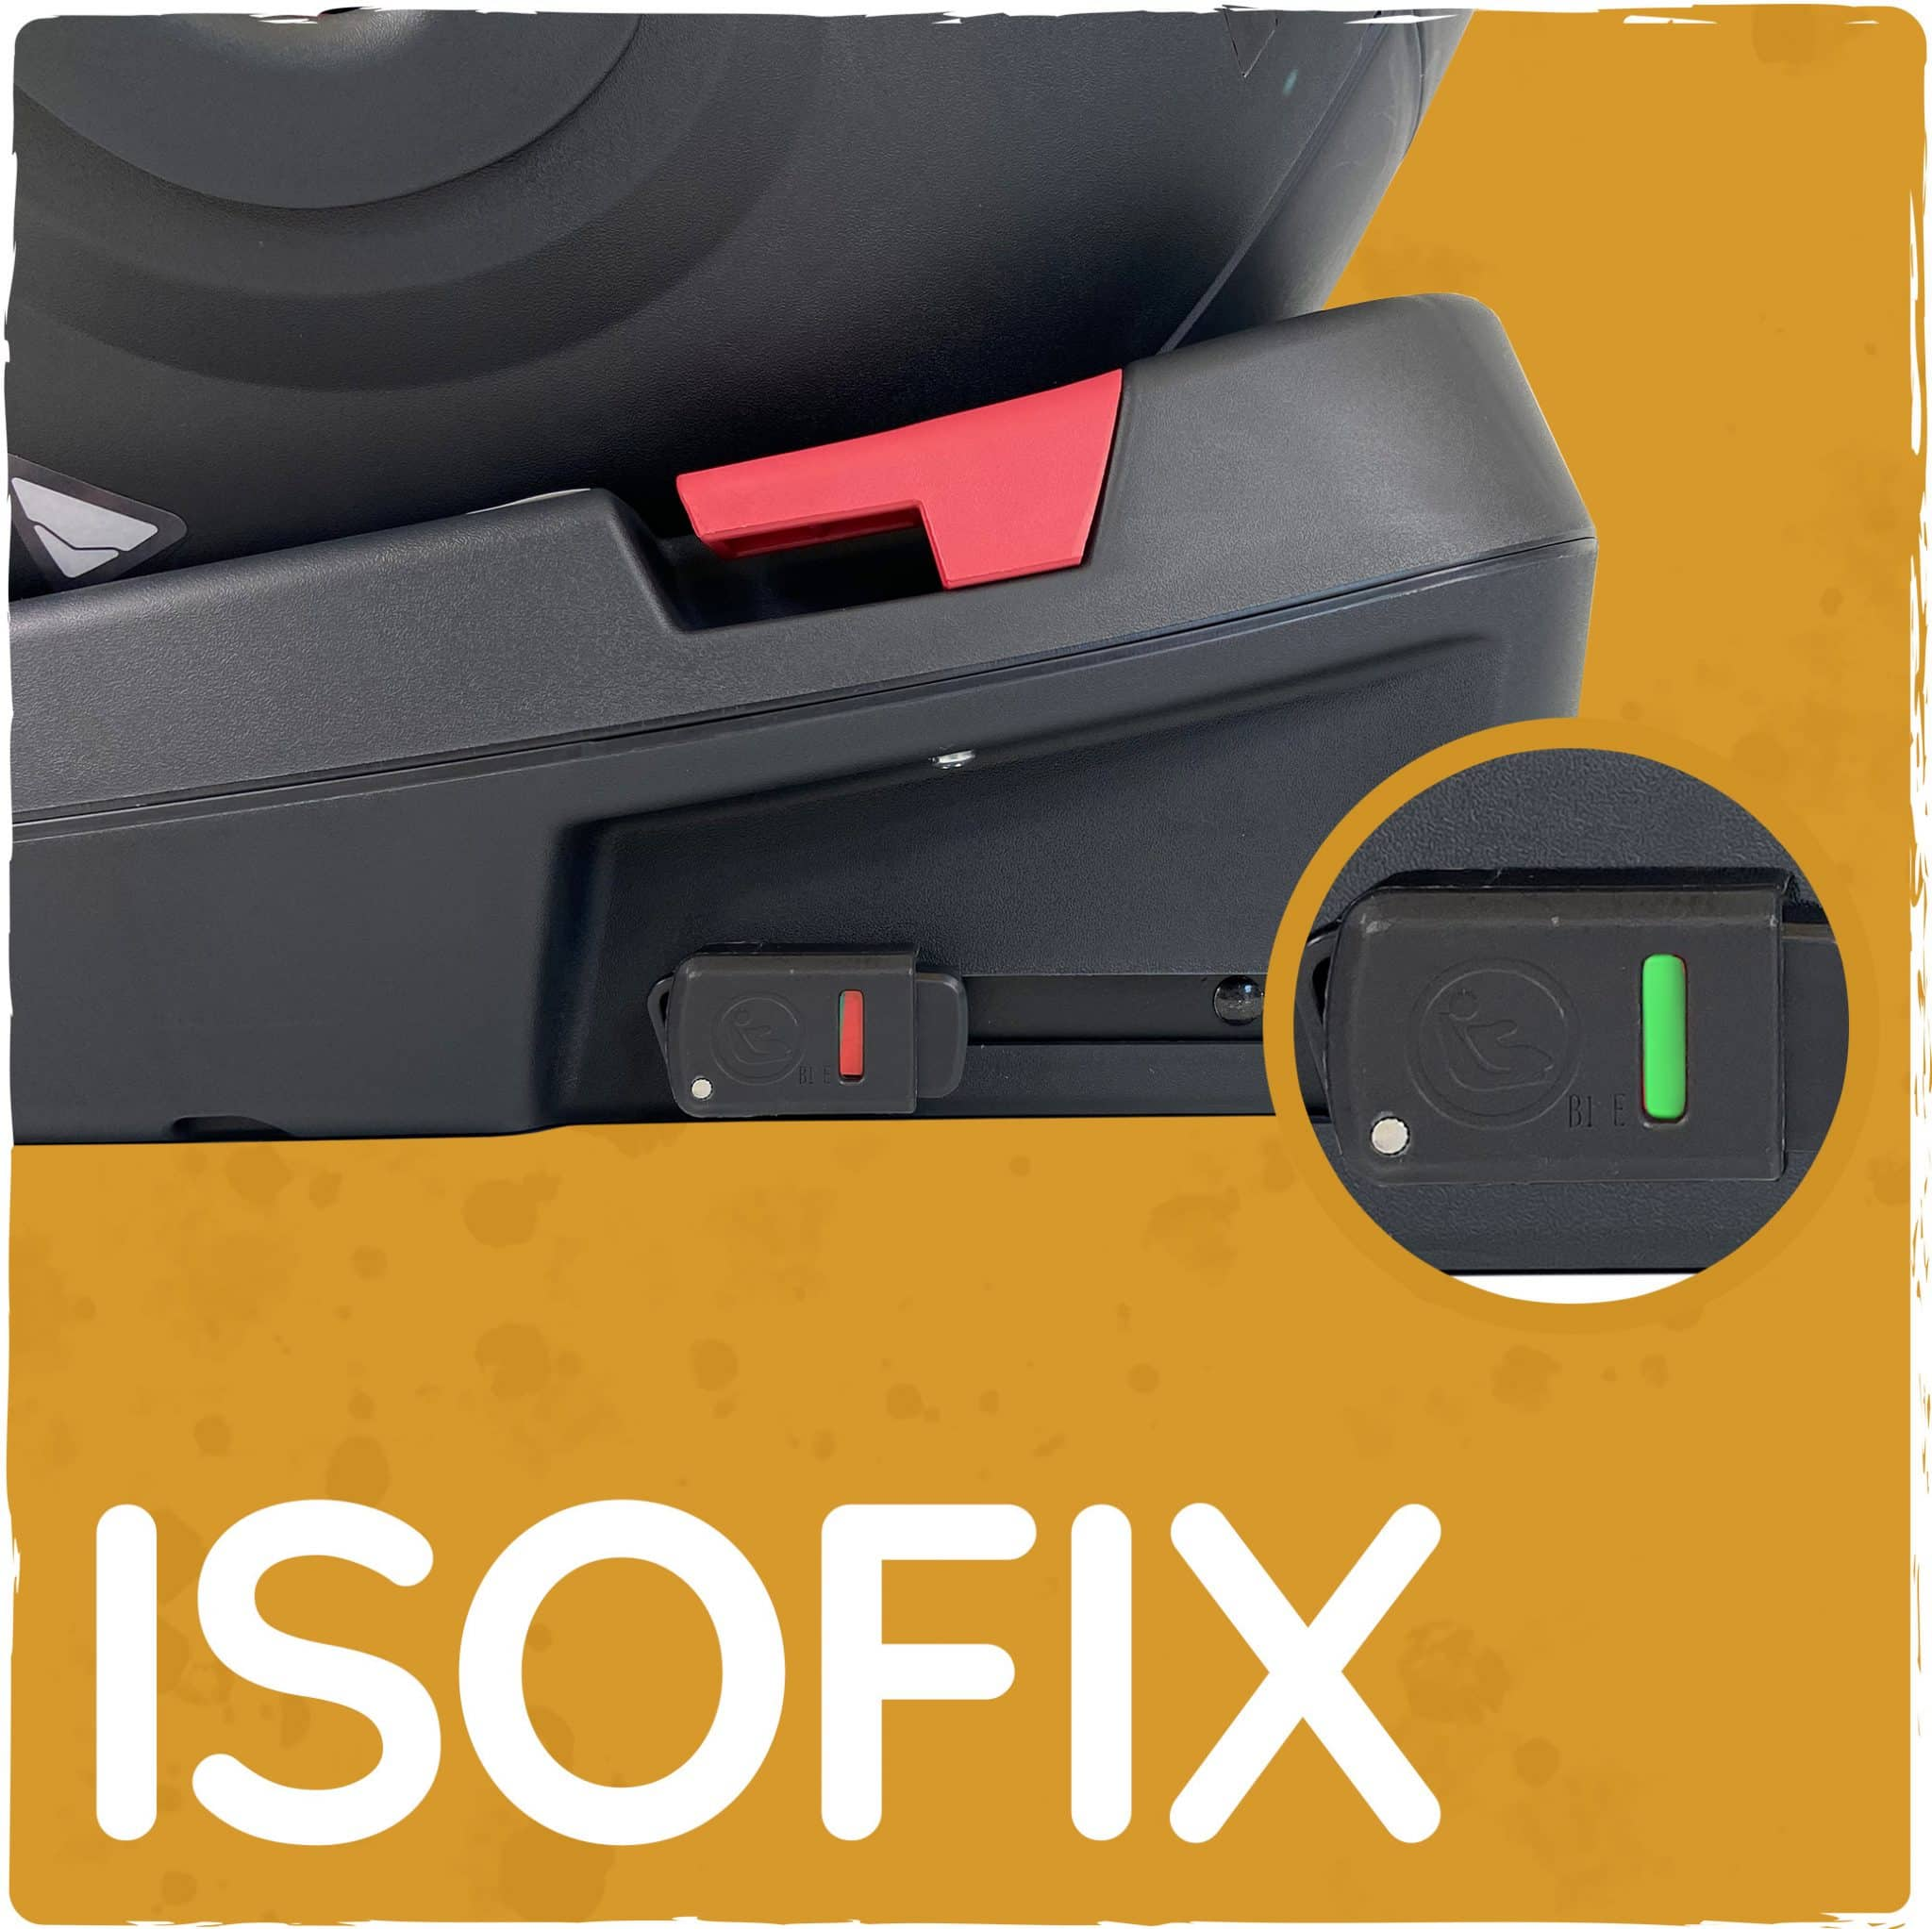 Simple and clear ISOFIX fitting